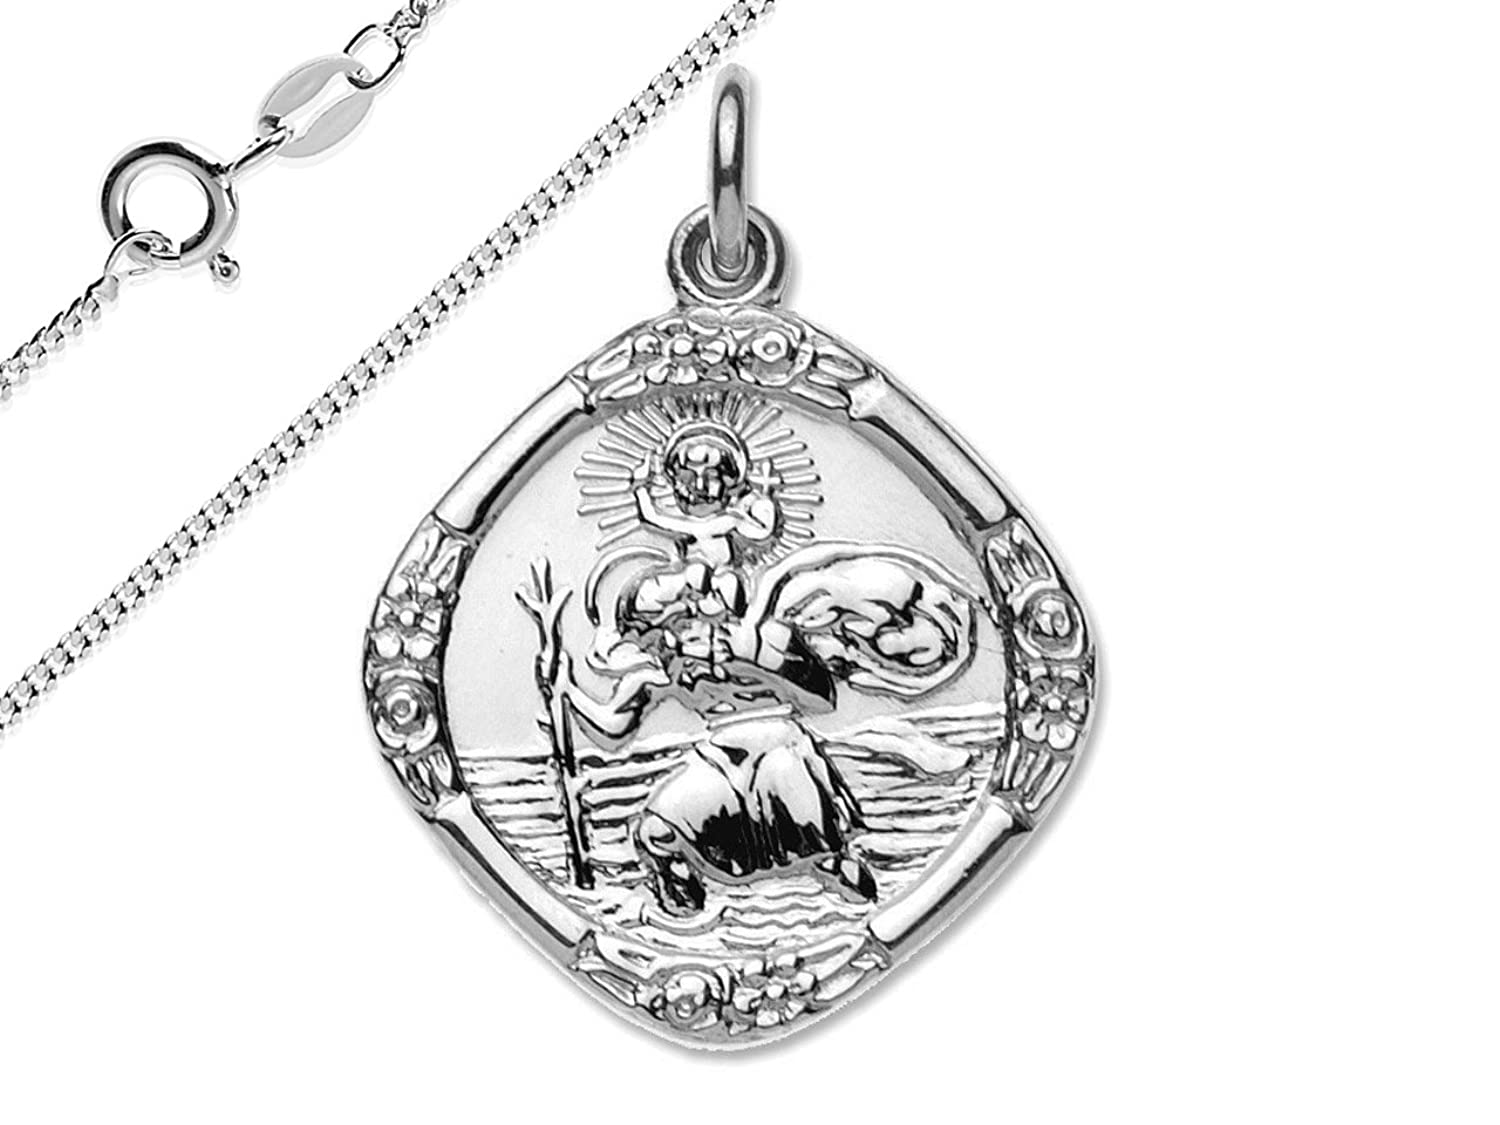 Solid 925 sterling silver double sided st christopher medal pendant solid 925 sterling silver double sided st christopher medal pendant with a 1845cm sterling silver curb necklace amazon jewellery aloadofball Images